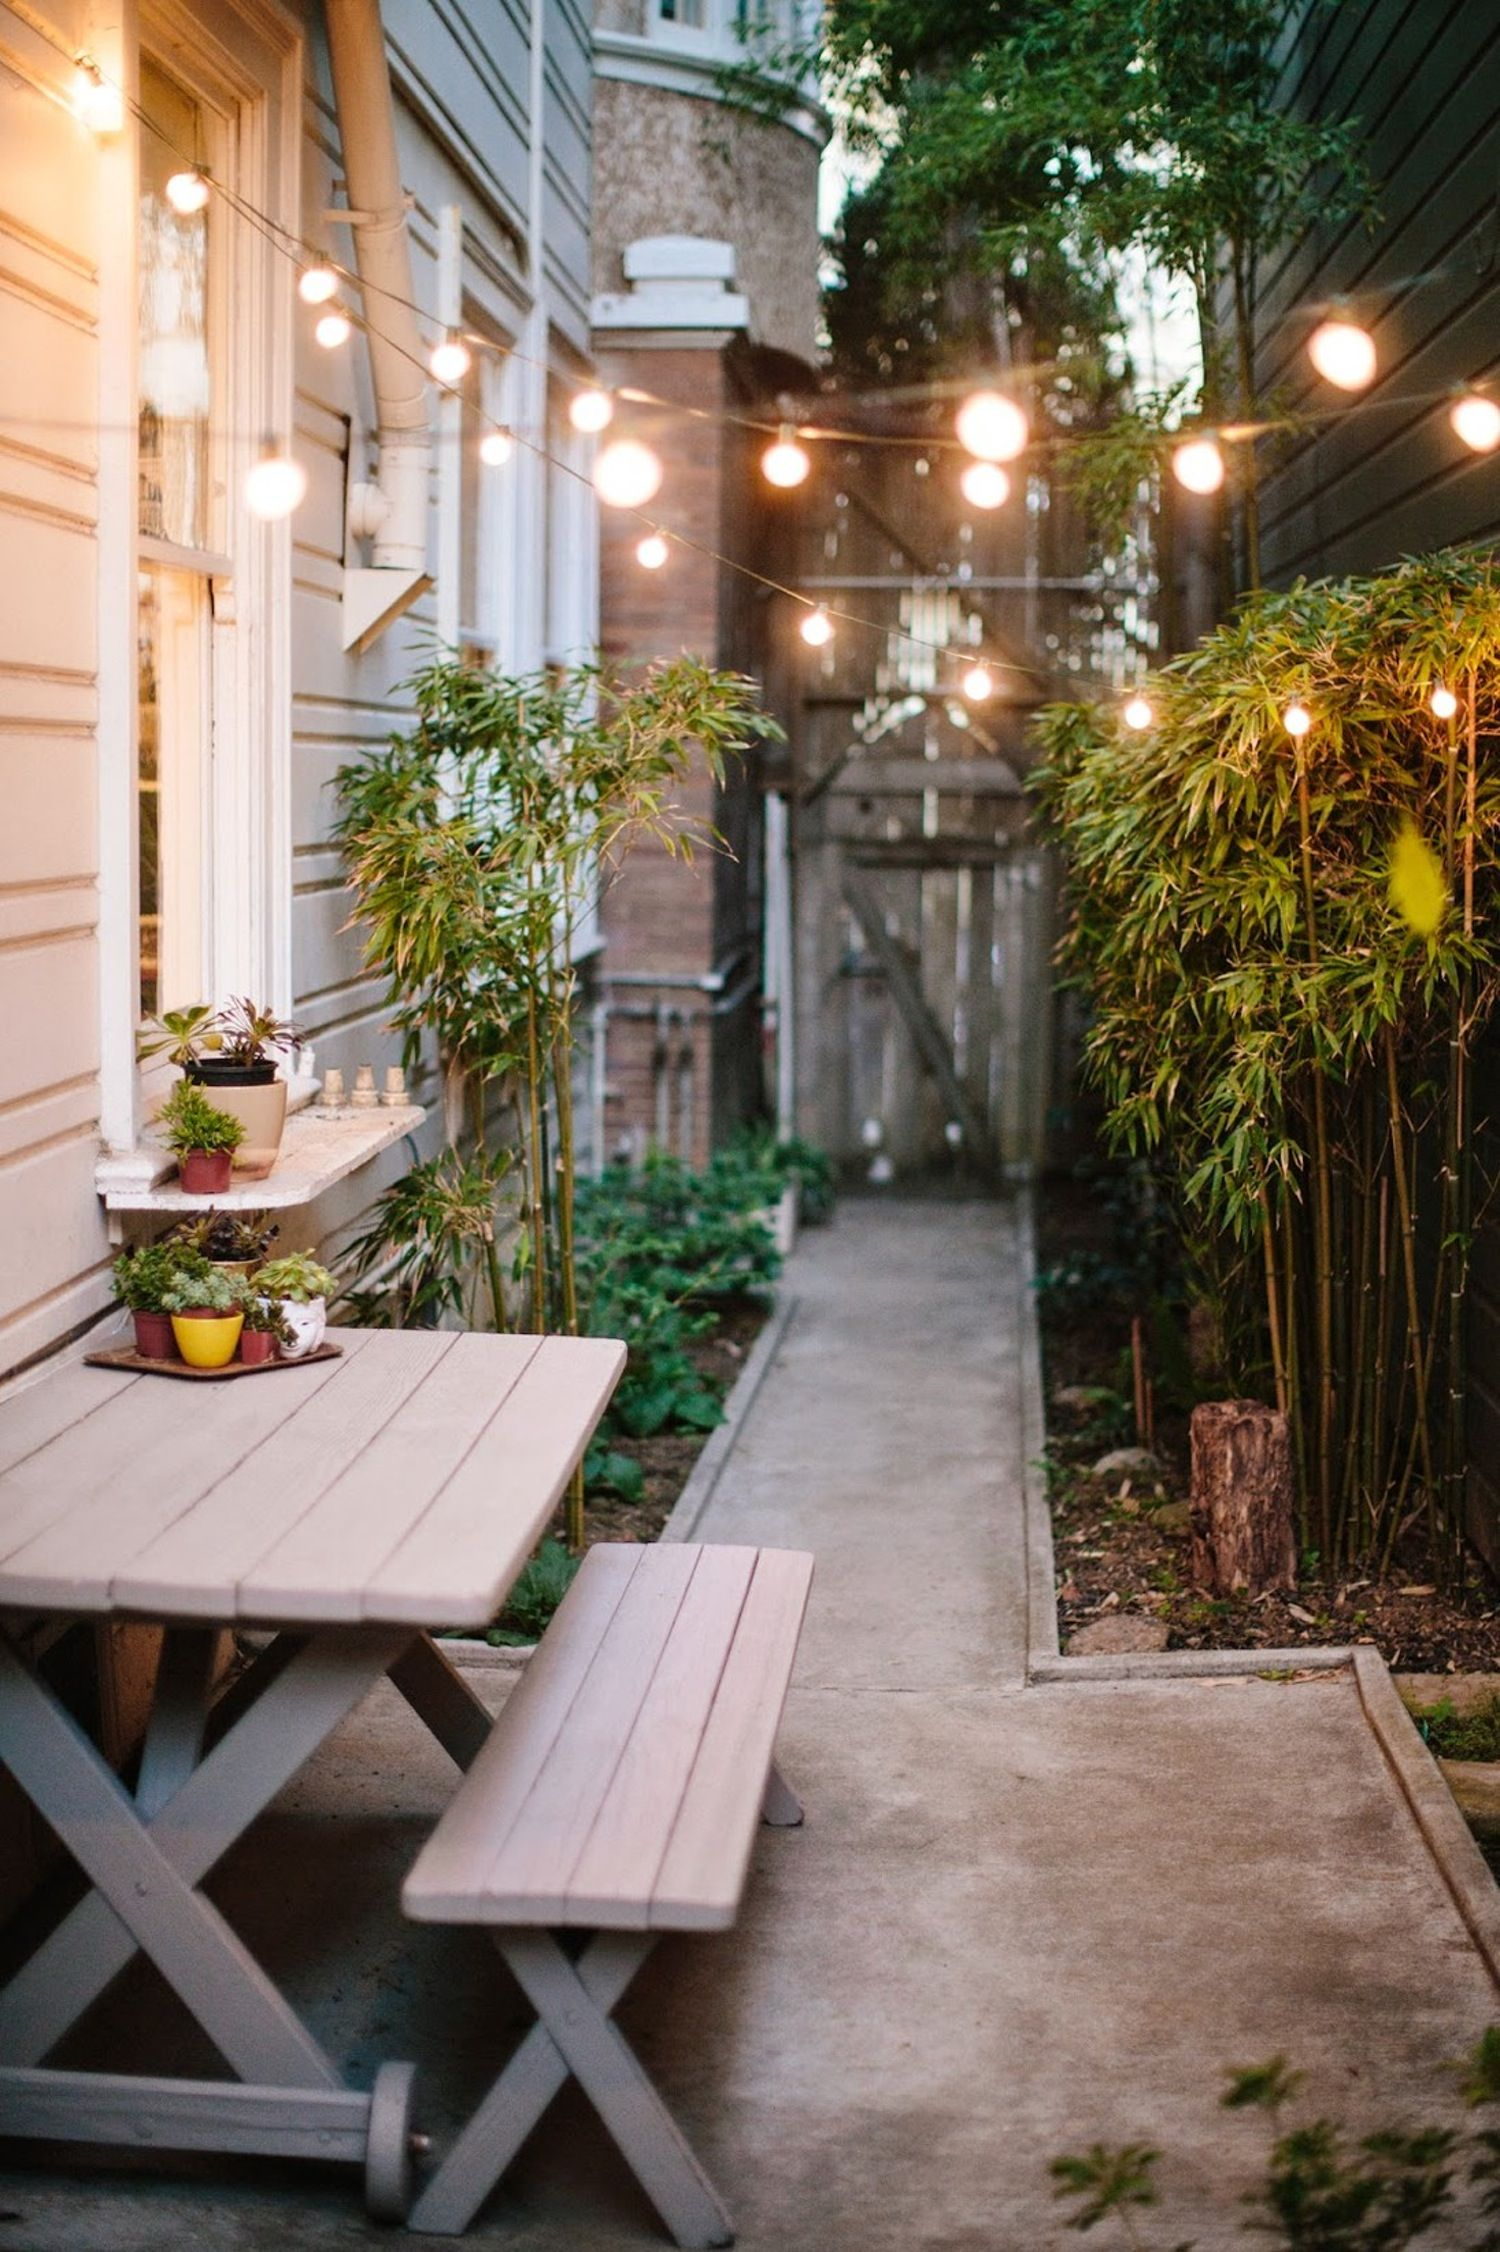 Superb Small Outdoor Space Ideas Part - 2: This Summer, No Excuses: Make The Most Of Your Small Outdoor Space